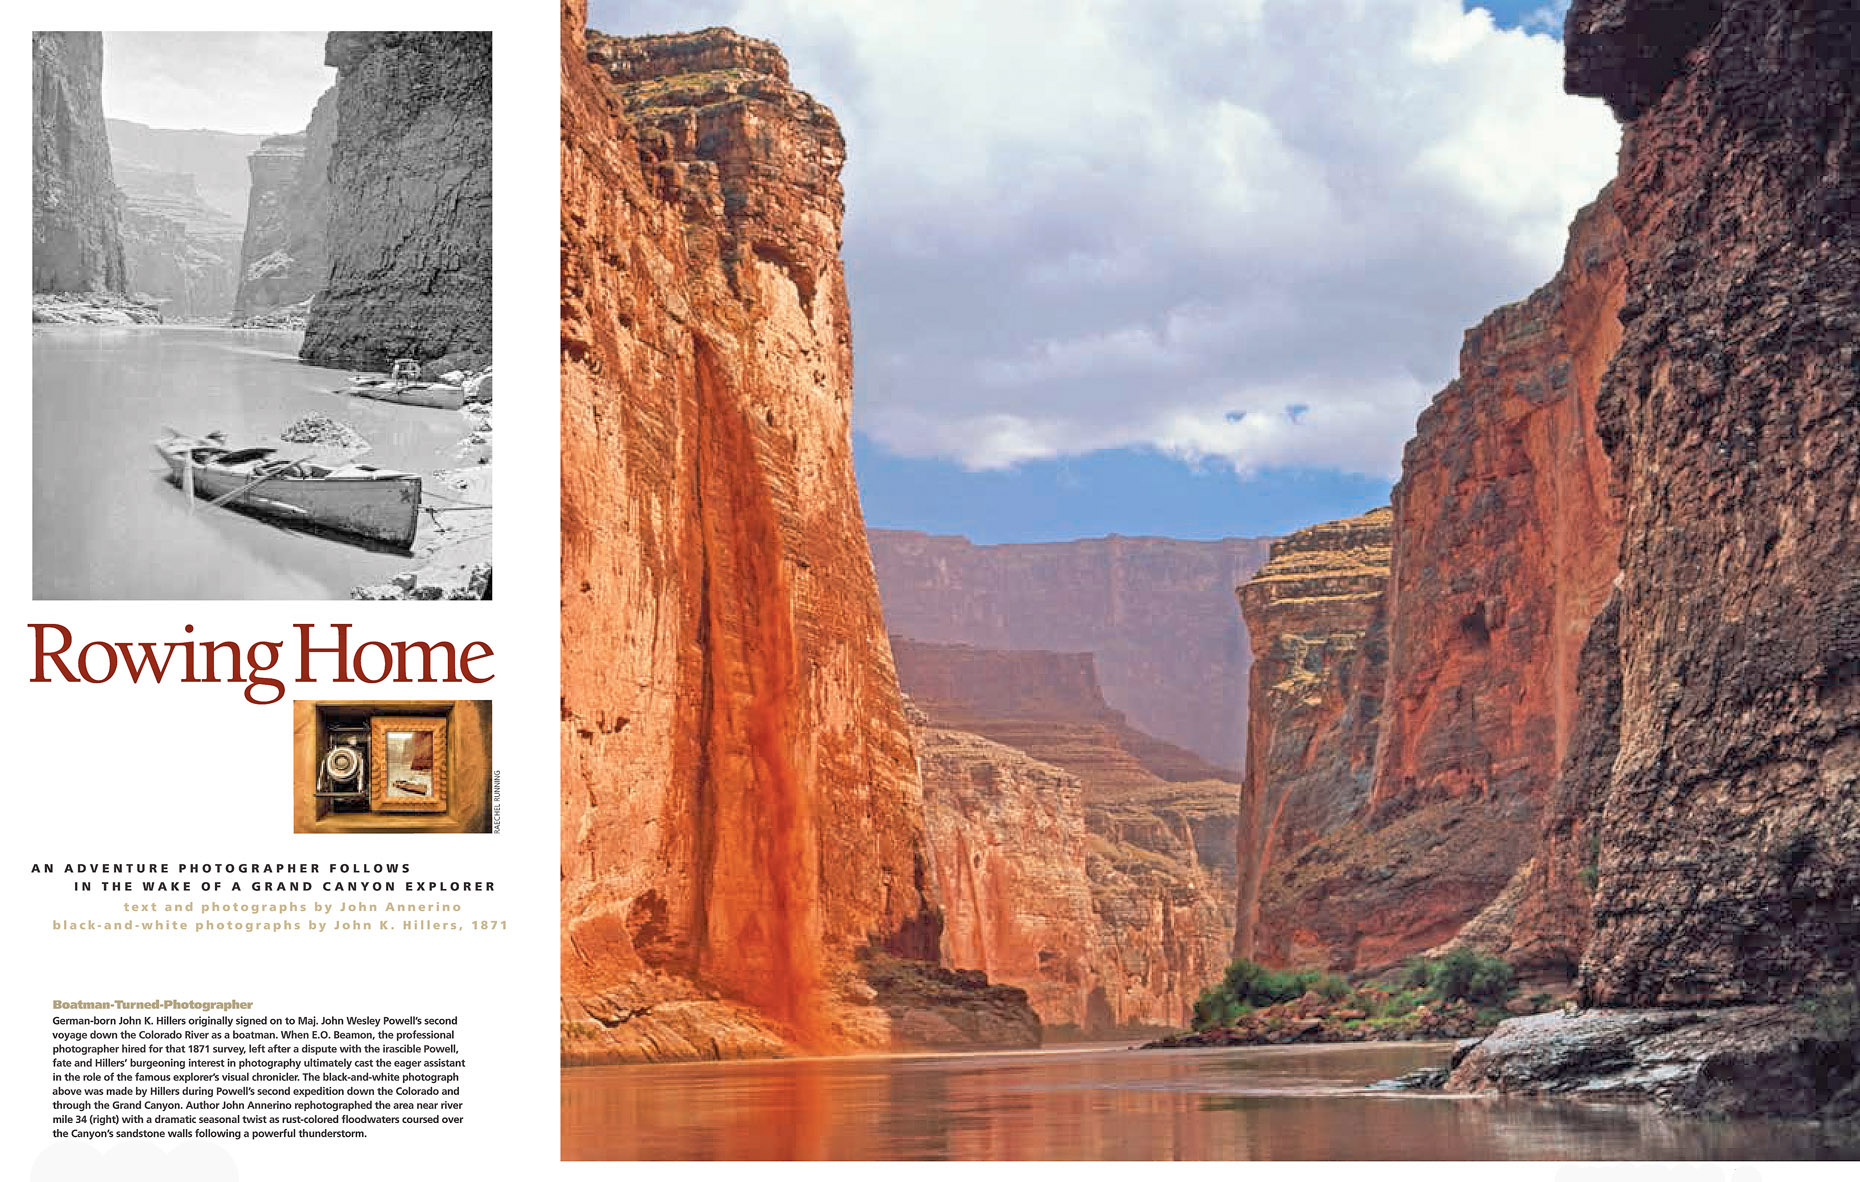 Rowing Home, John Annerino, Adventure Photographer, Grand Canyon photographer, John K. Hillers, Arizona Highways , John Annerino, photography book reviews, National Geographic Adventure